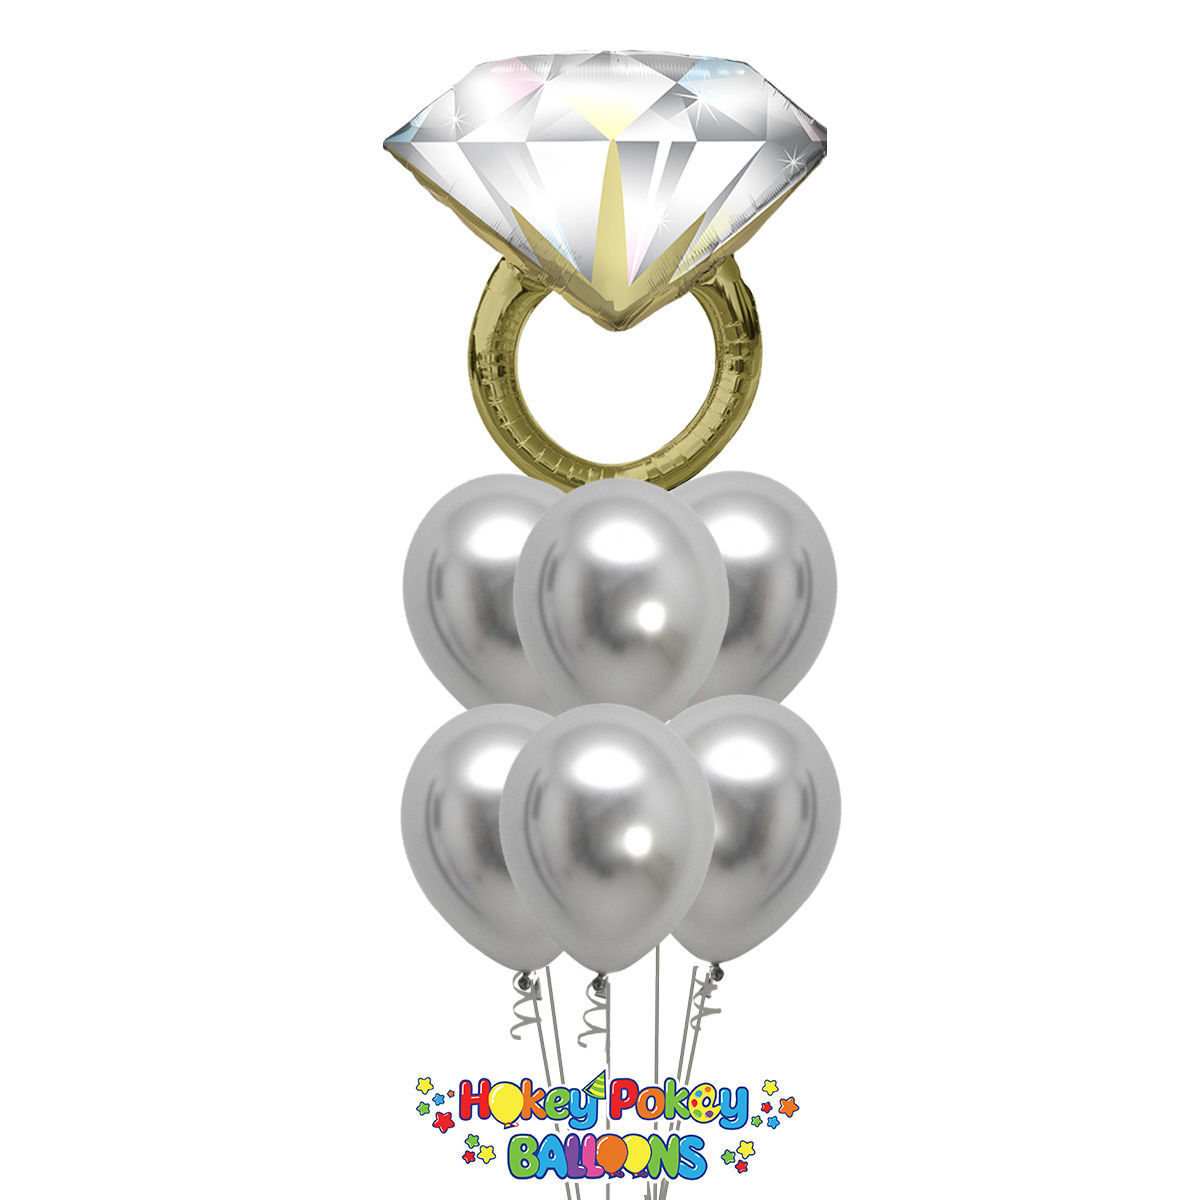 Picture of Classic Balloon Bouquet with Diamond Ring